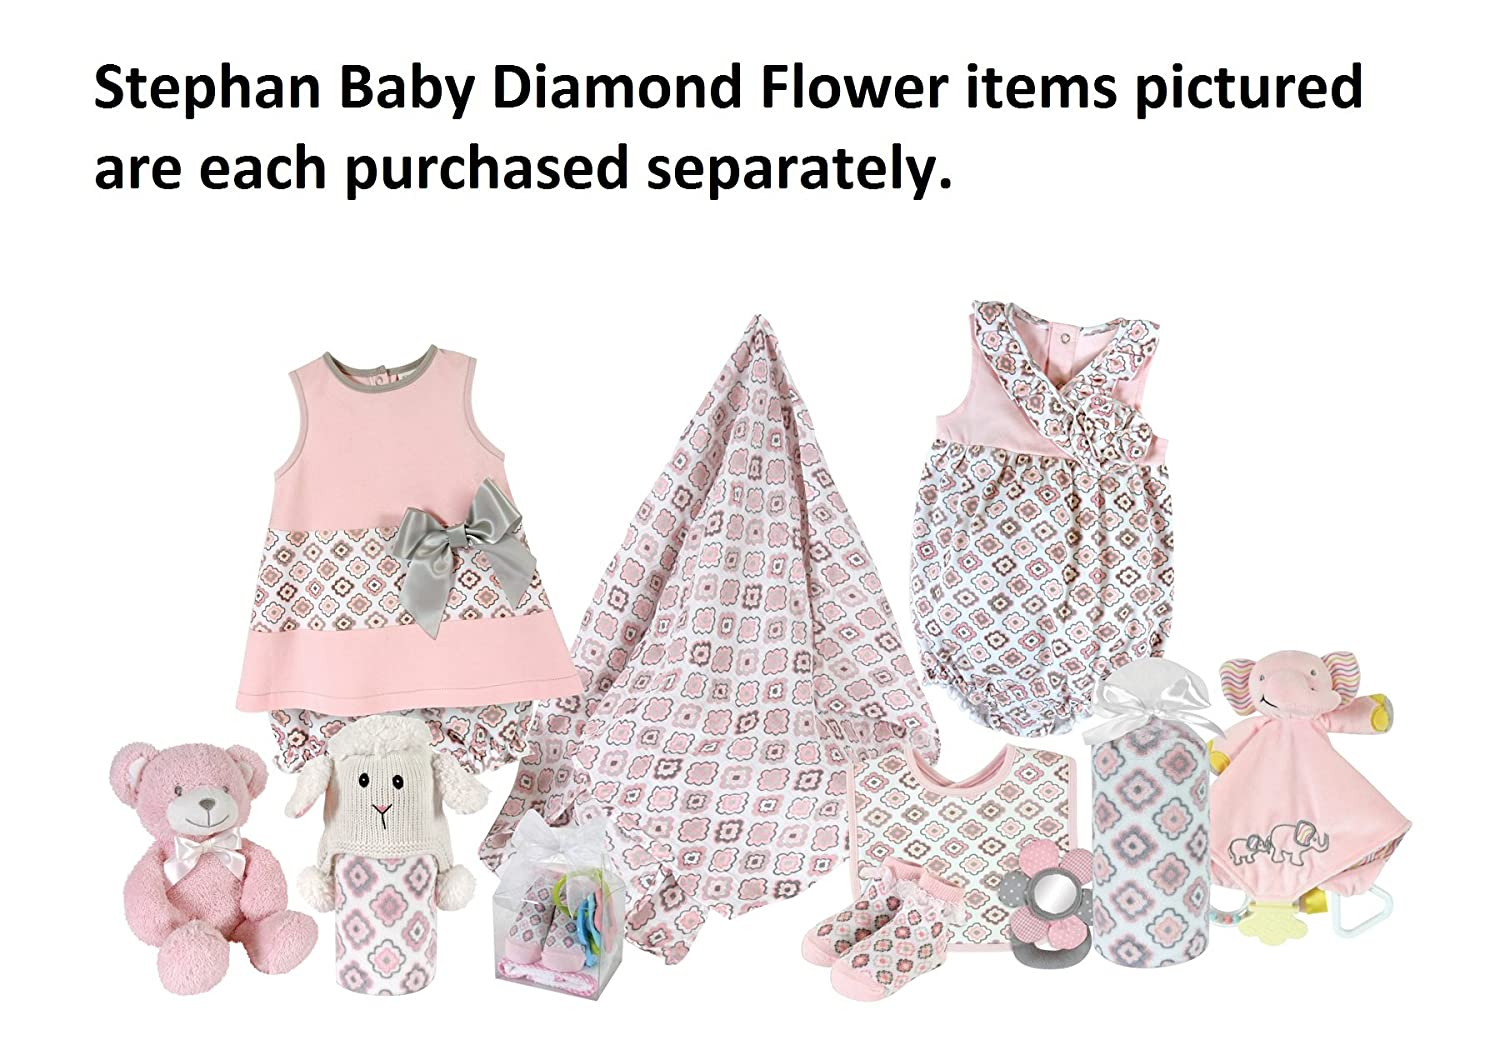 1e3e1e7a3d1 Amazon.com  Stephan Baby Bubble Romper-Style Diamond Flower Diaper Cover